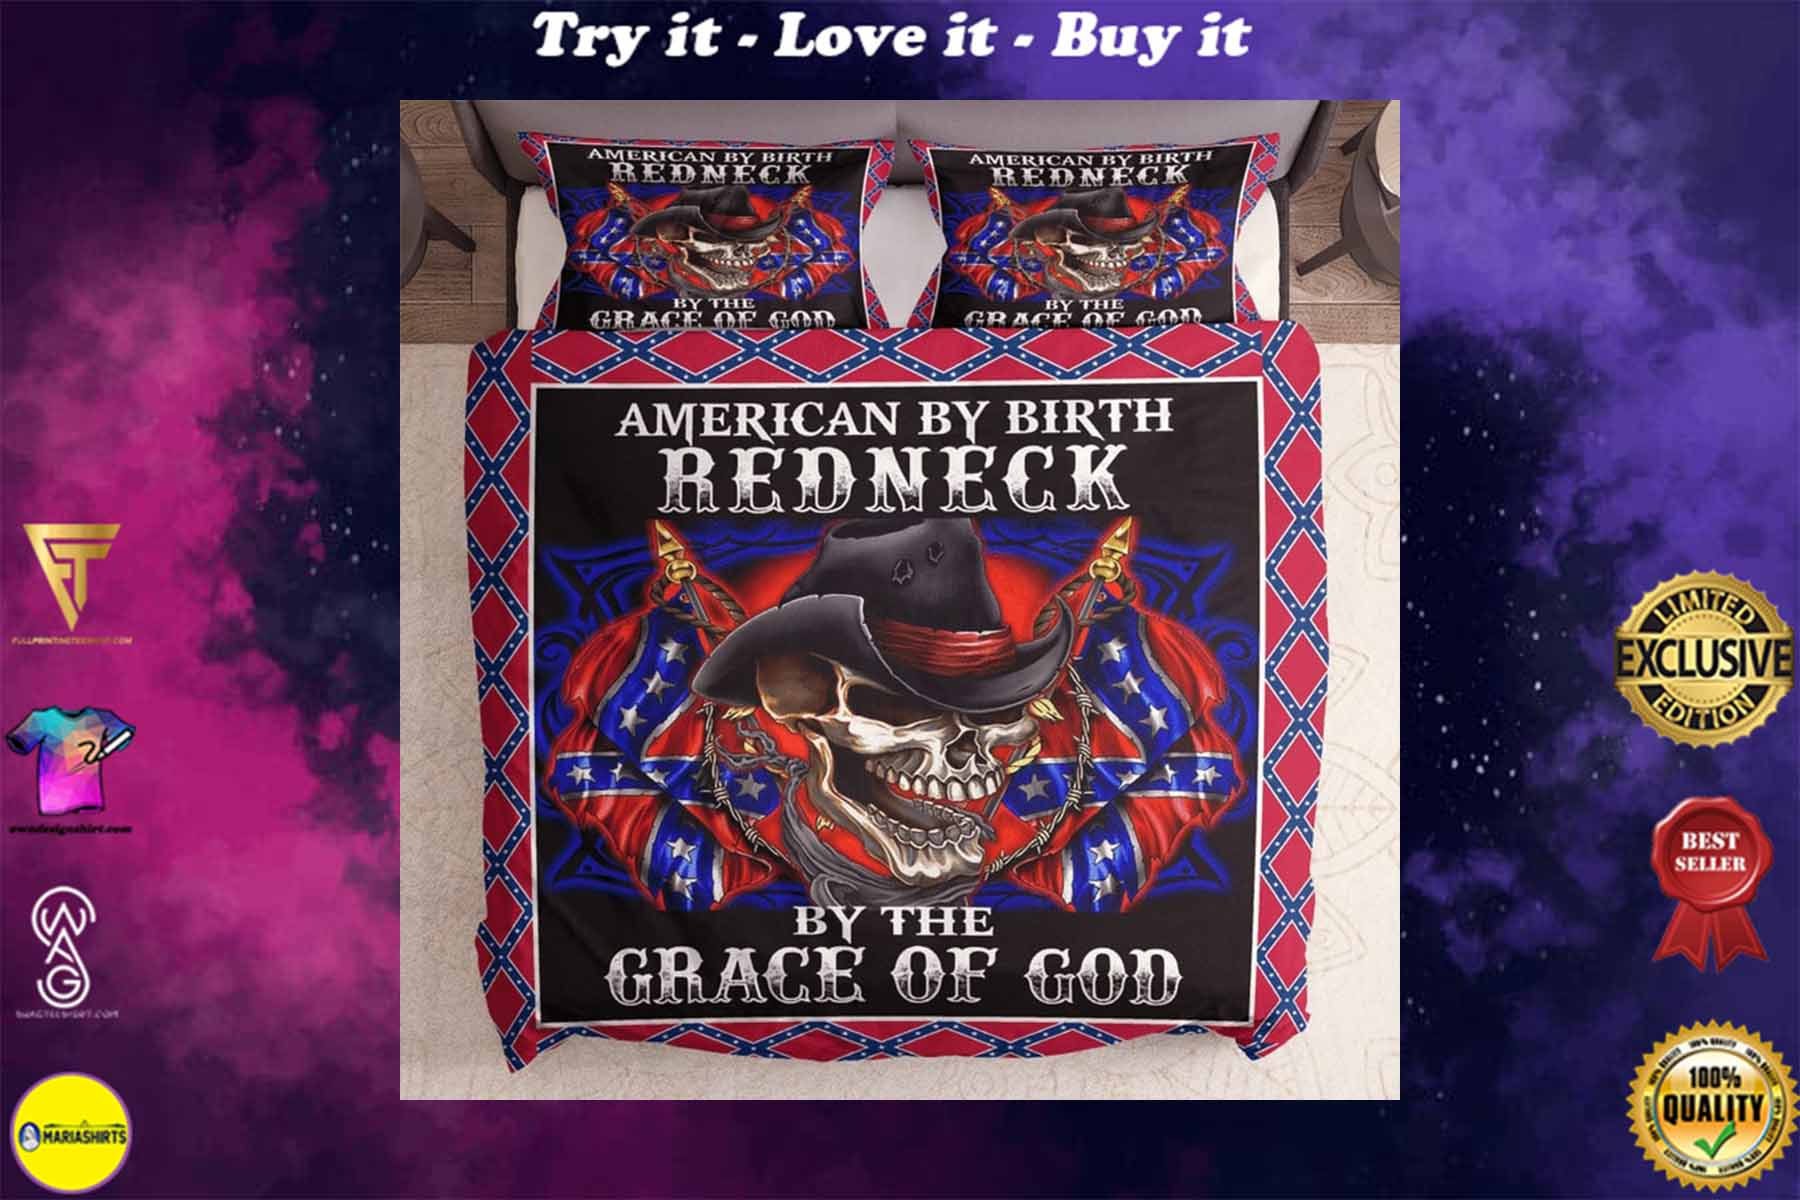 [special edition] skull american by birth redneck by the grace of God confederate flag bedding set - maria